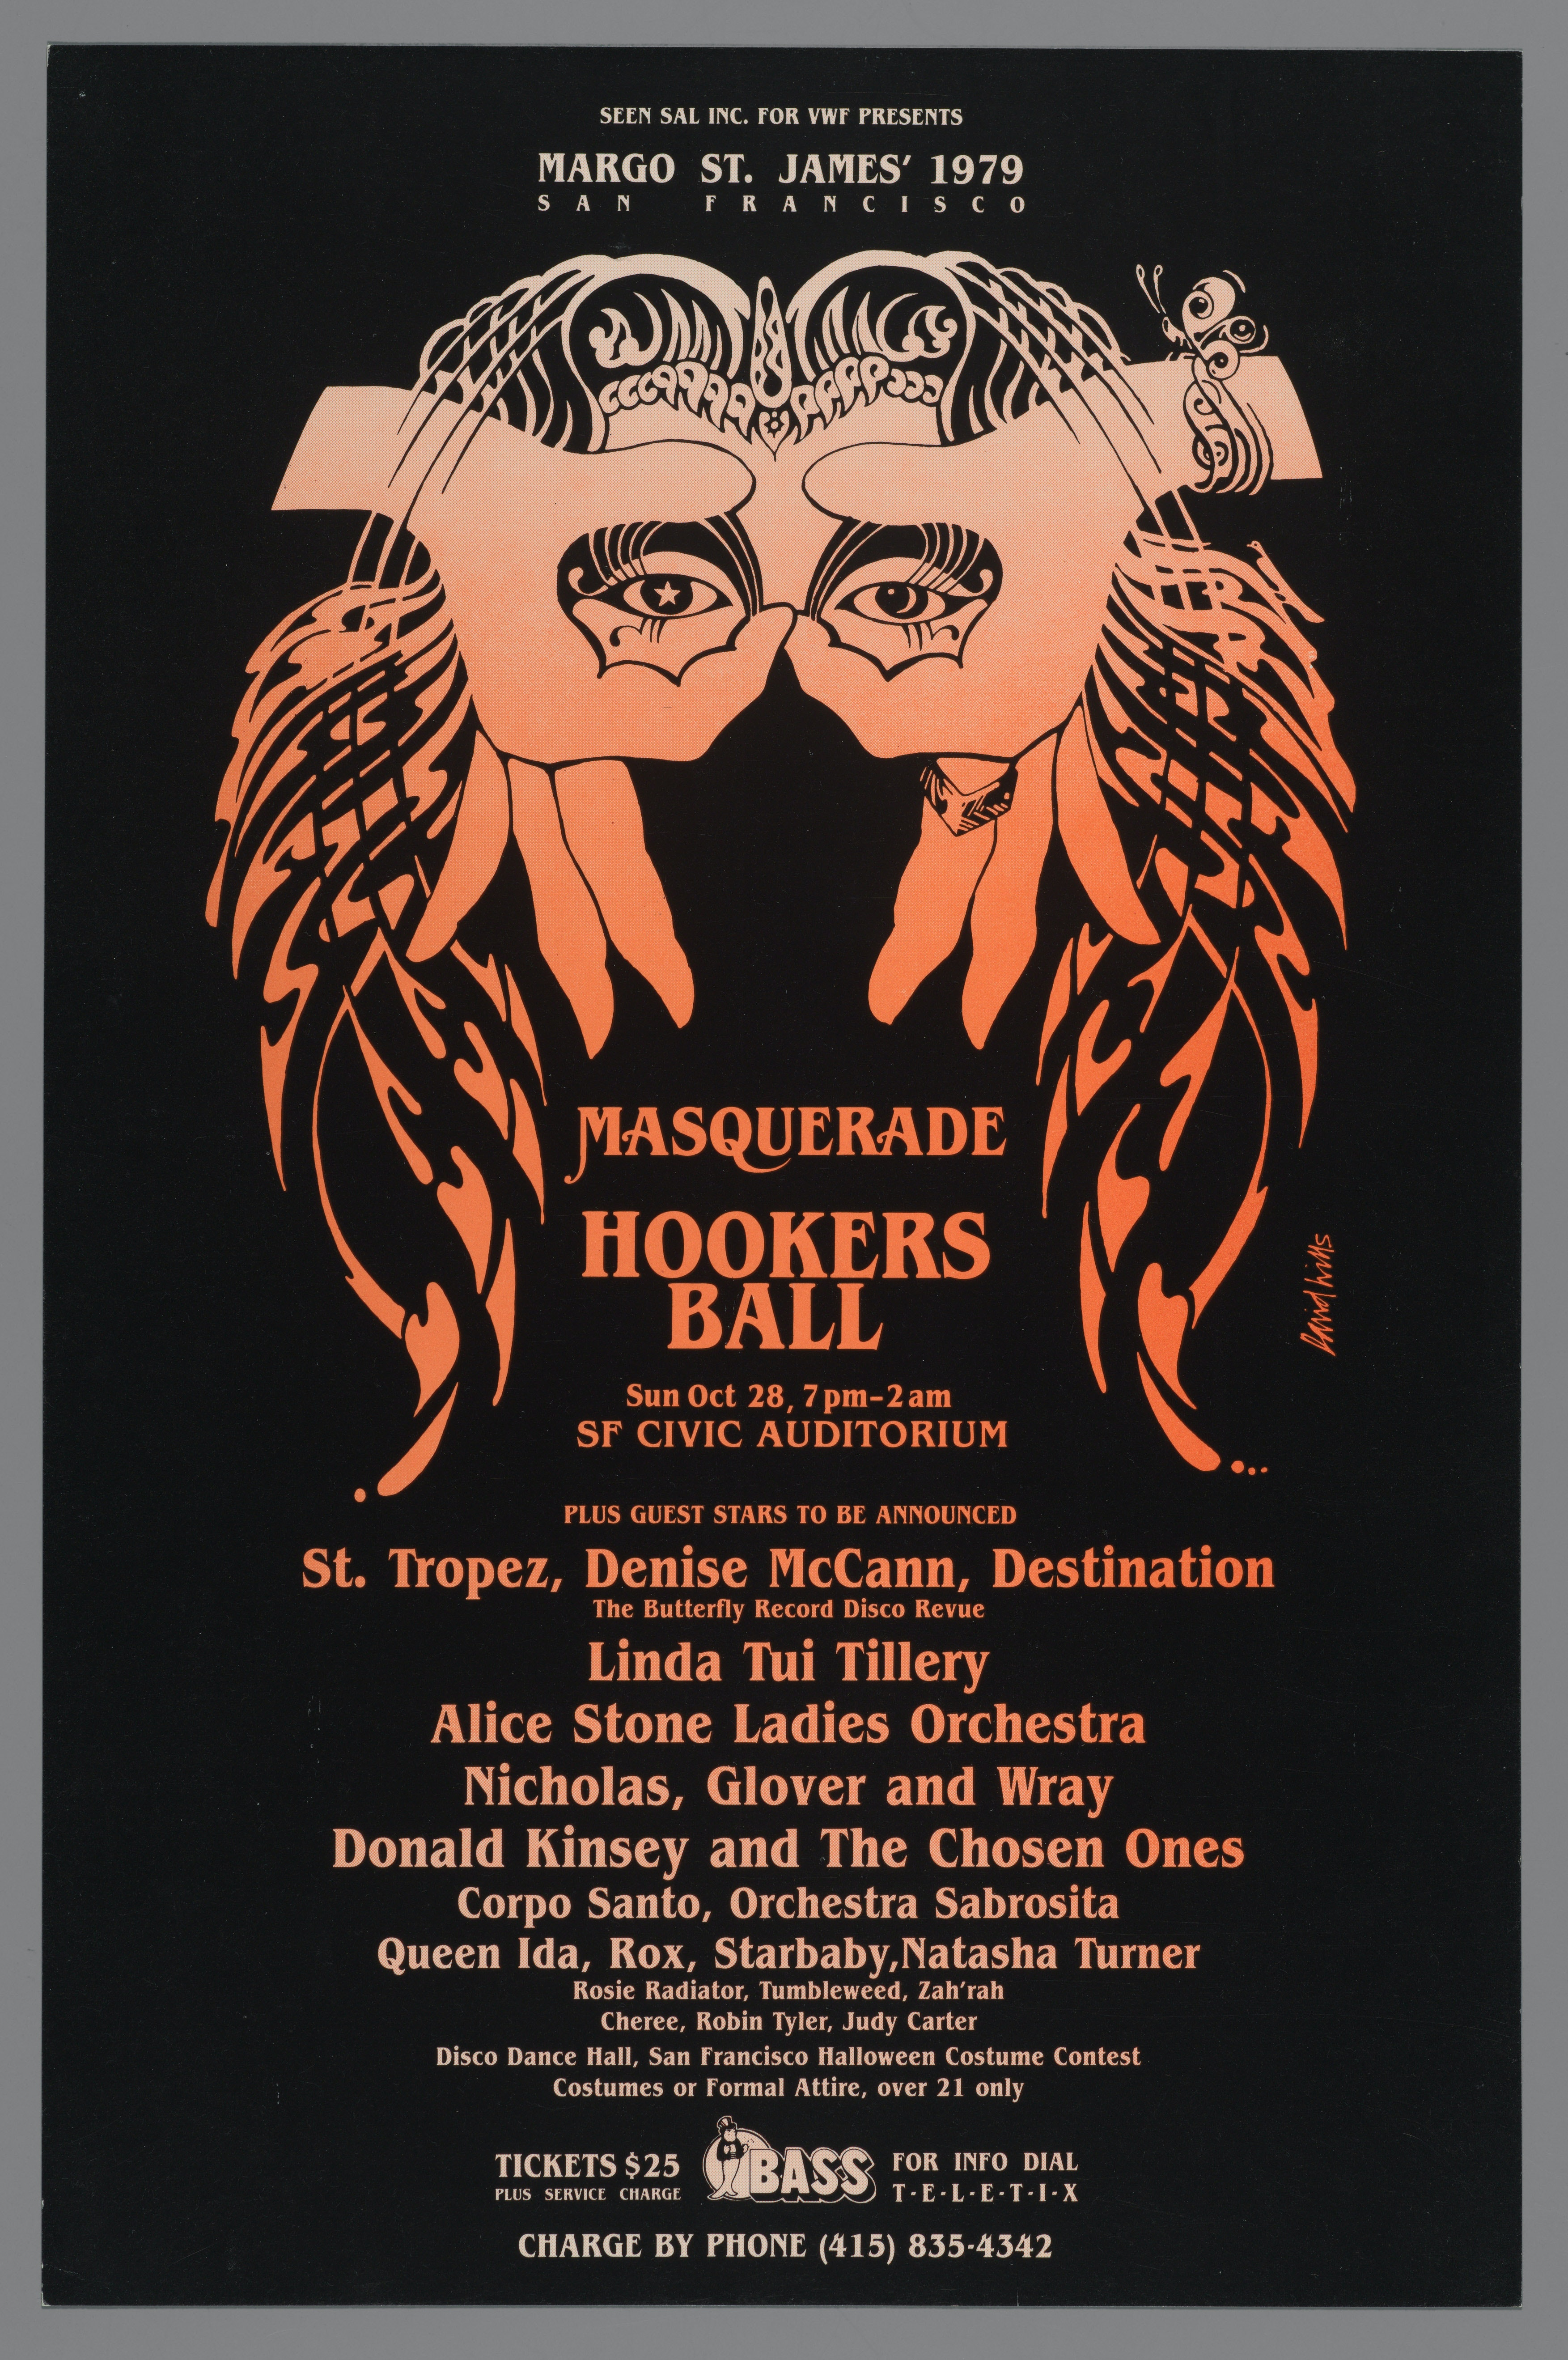 Poster for Margo St. James's 1979 San Francisco Masquerade Hookers Ball